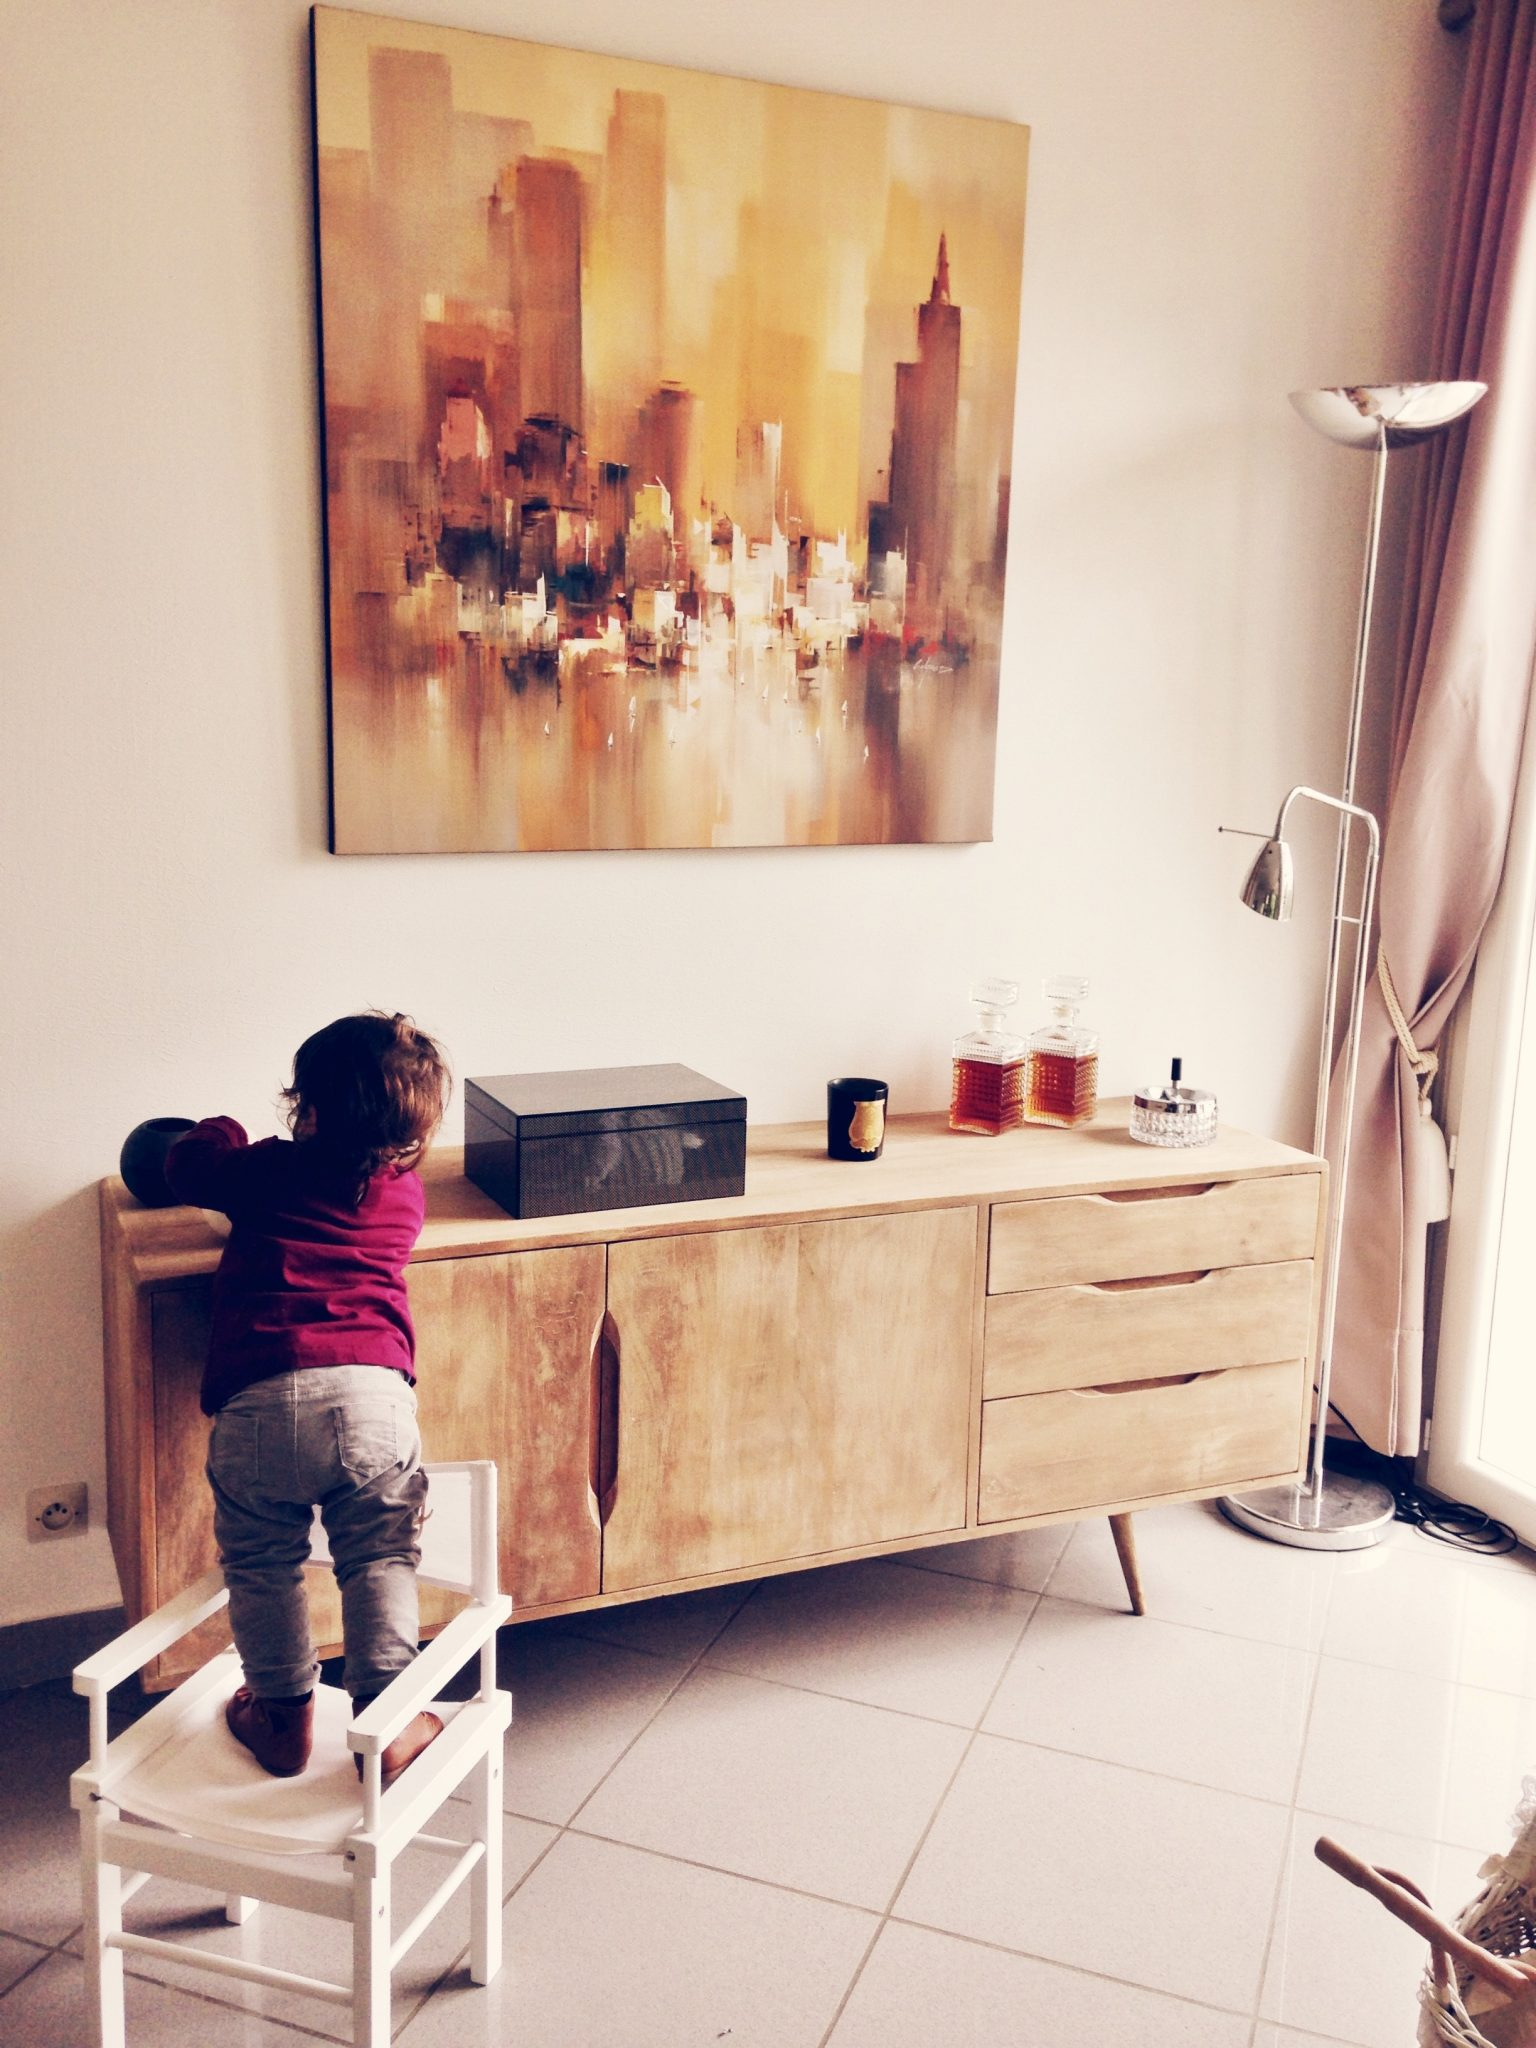 14 Tips To Help Your Child Proof Your Home